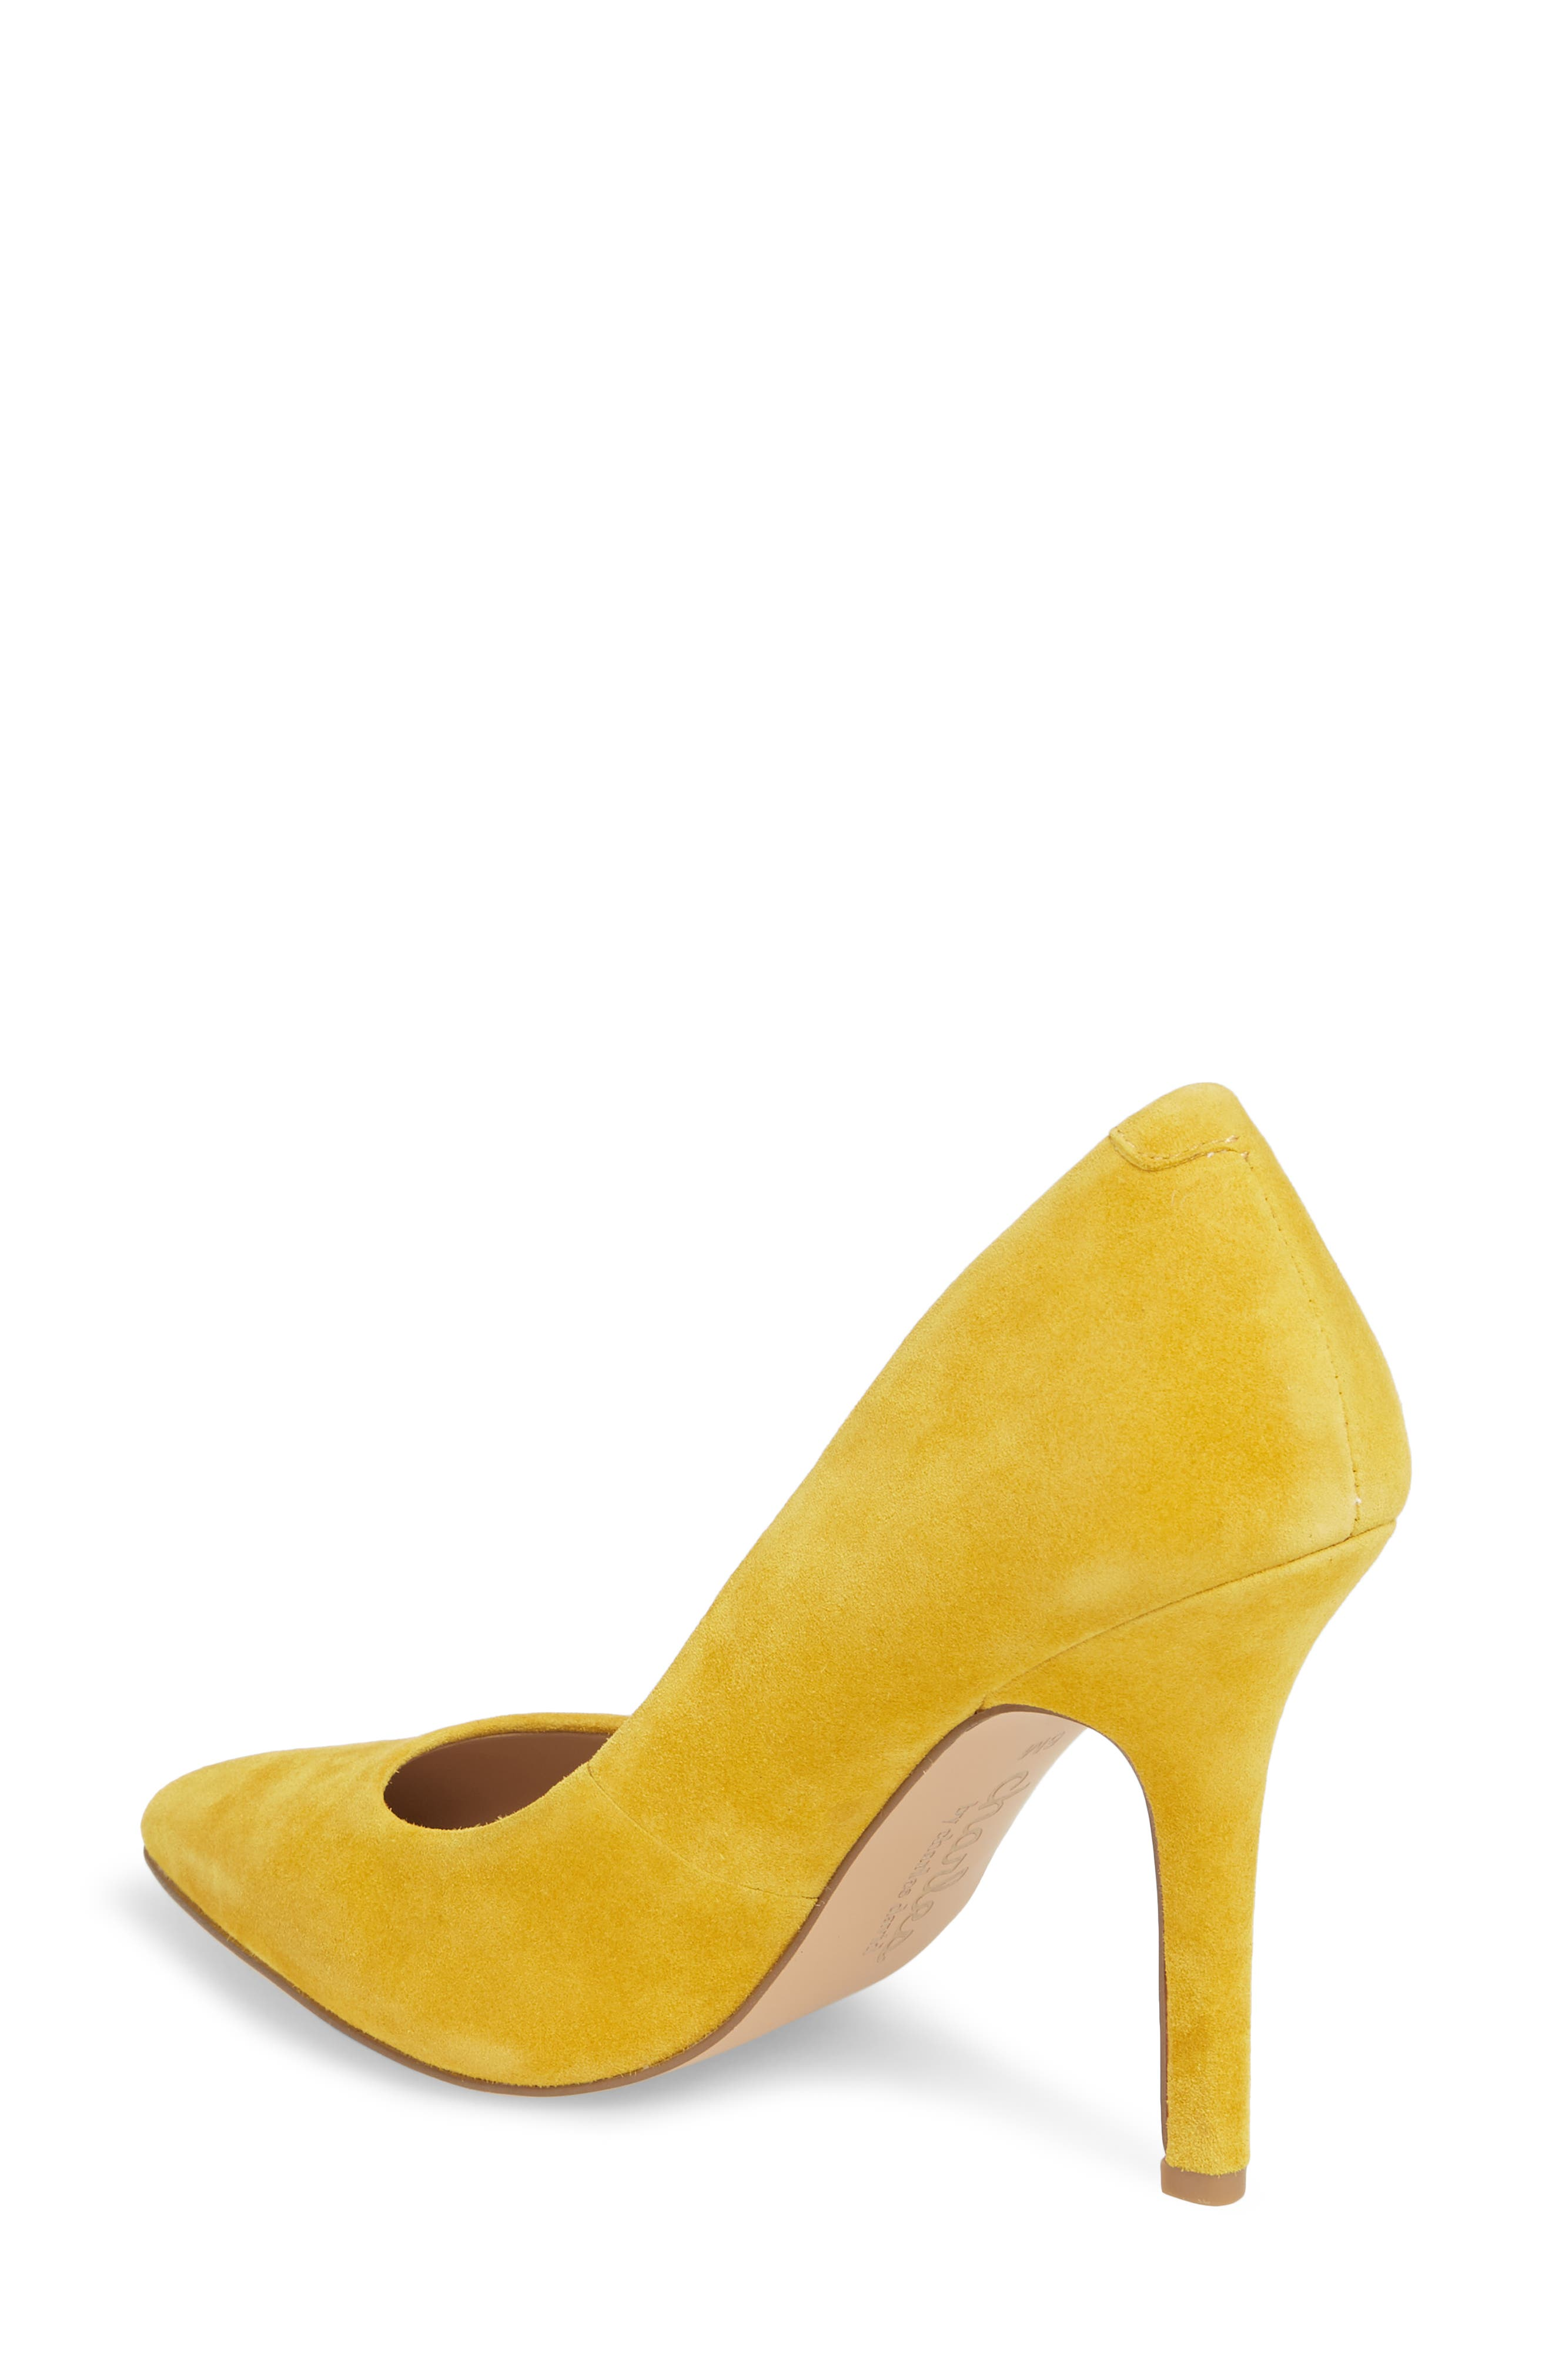 Maxx Pointy Toe Pump,                             Alternate thumbnail 2, color,                             Canary Suede